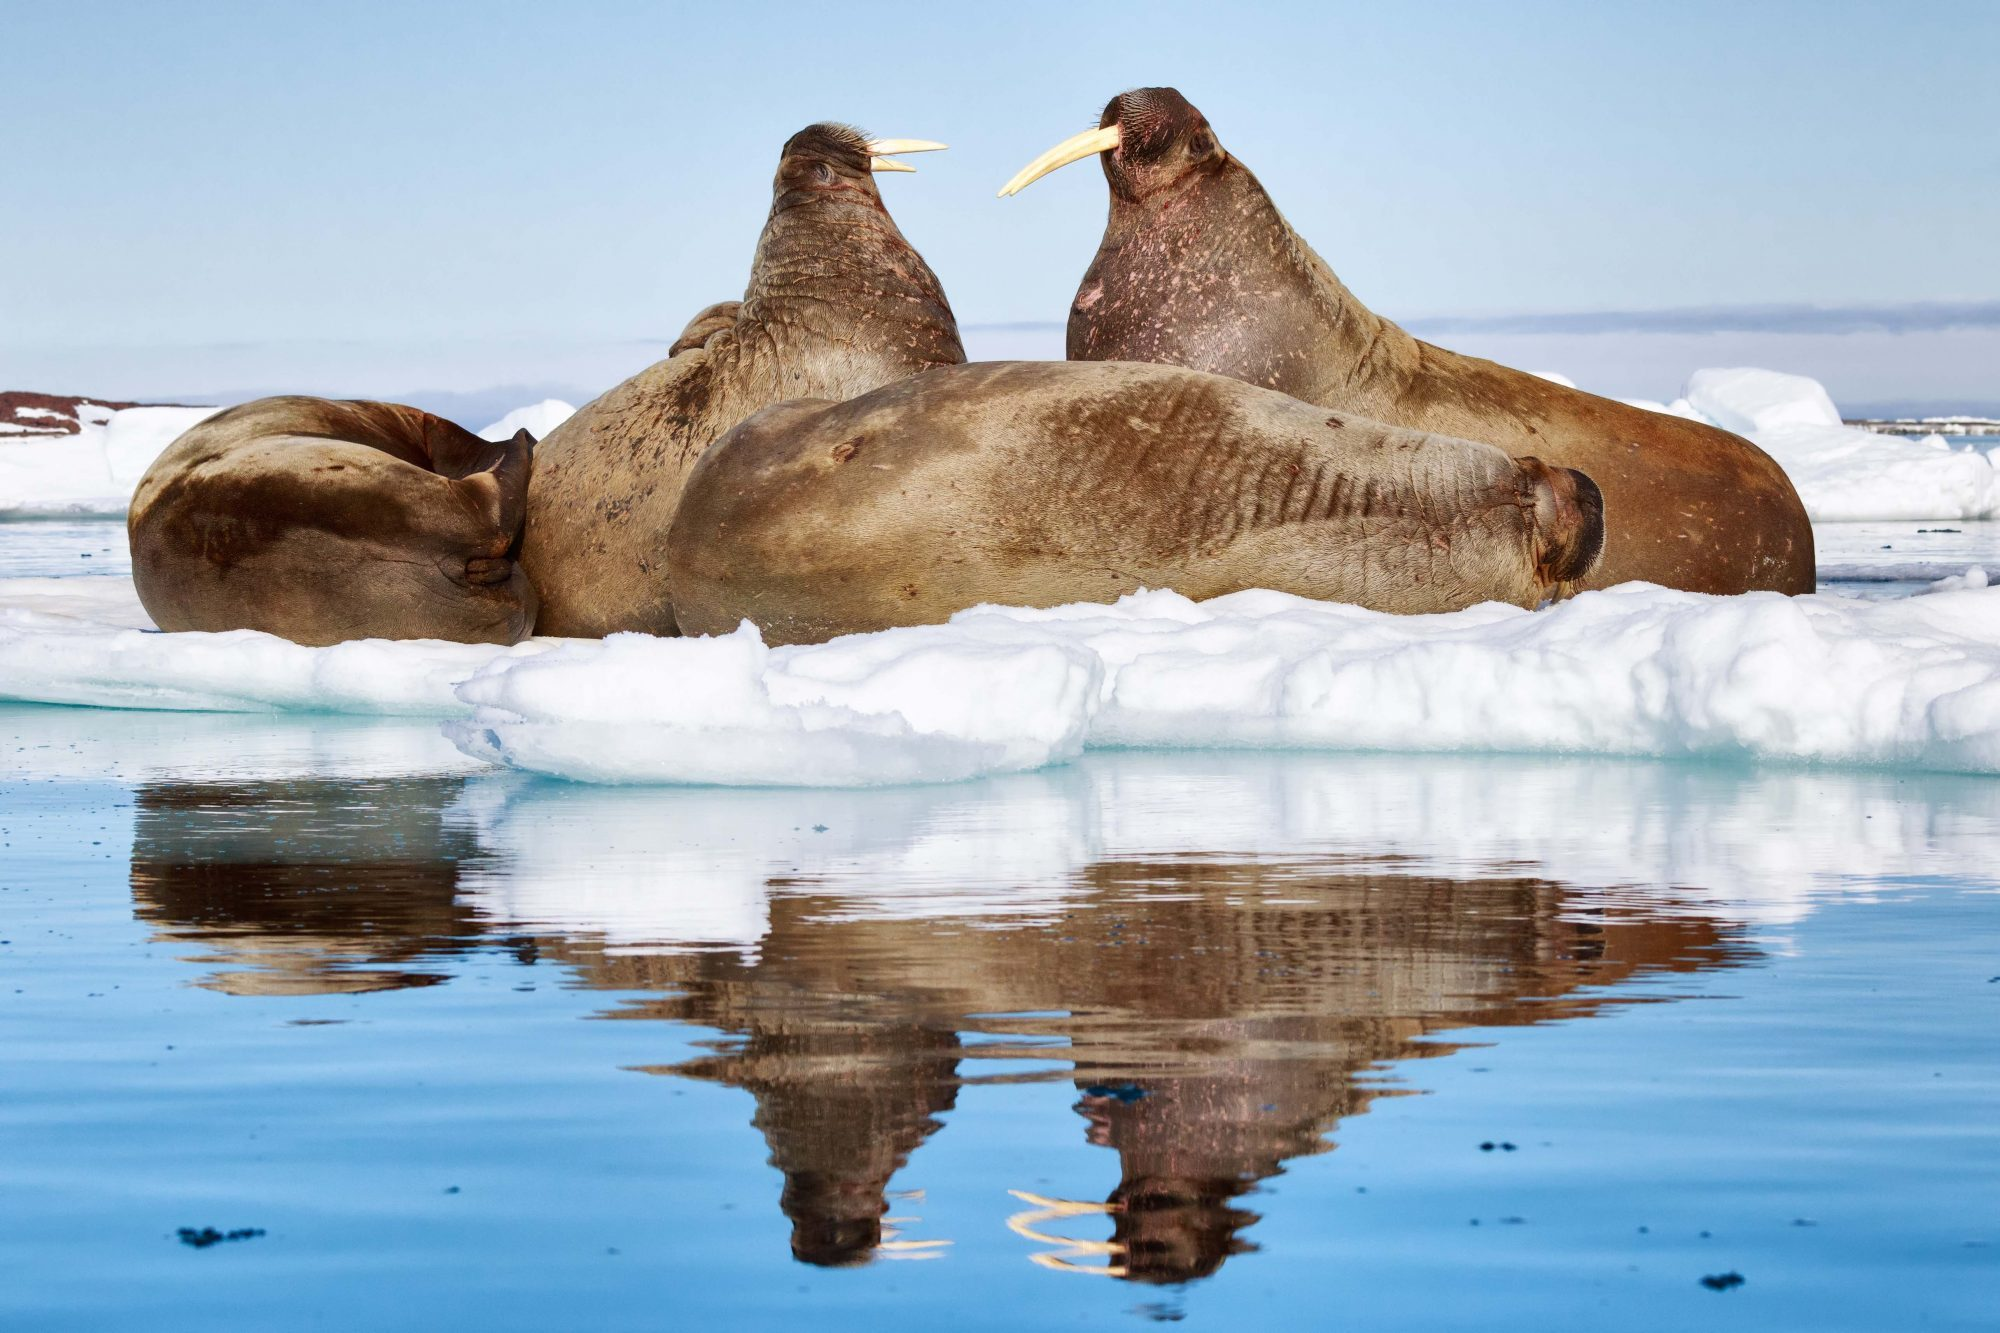 A ten-foot-long walrus sleeping on the ice with a flipper resting on its stomach whilst its pals huddle together to keep warm on another block of ice.